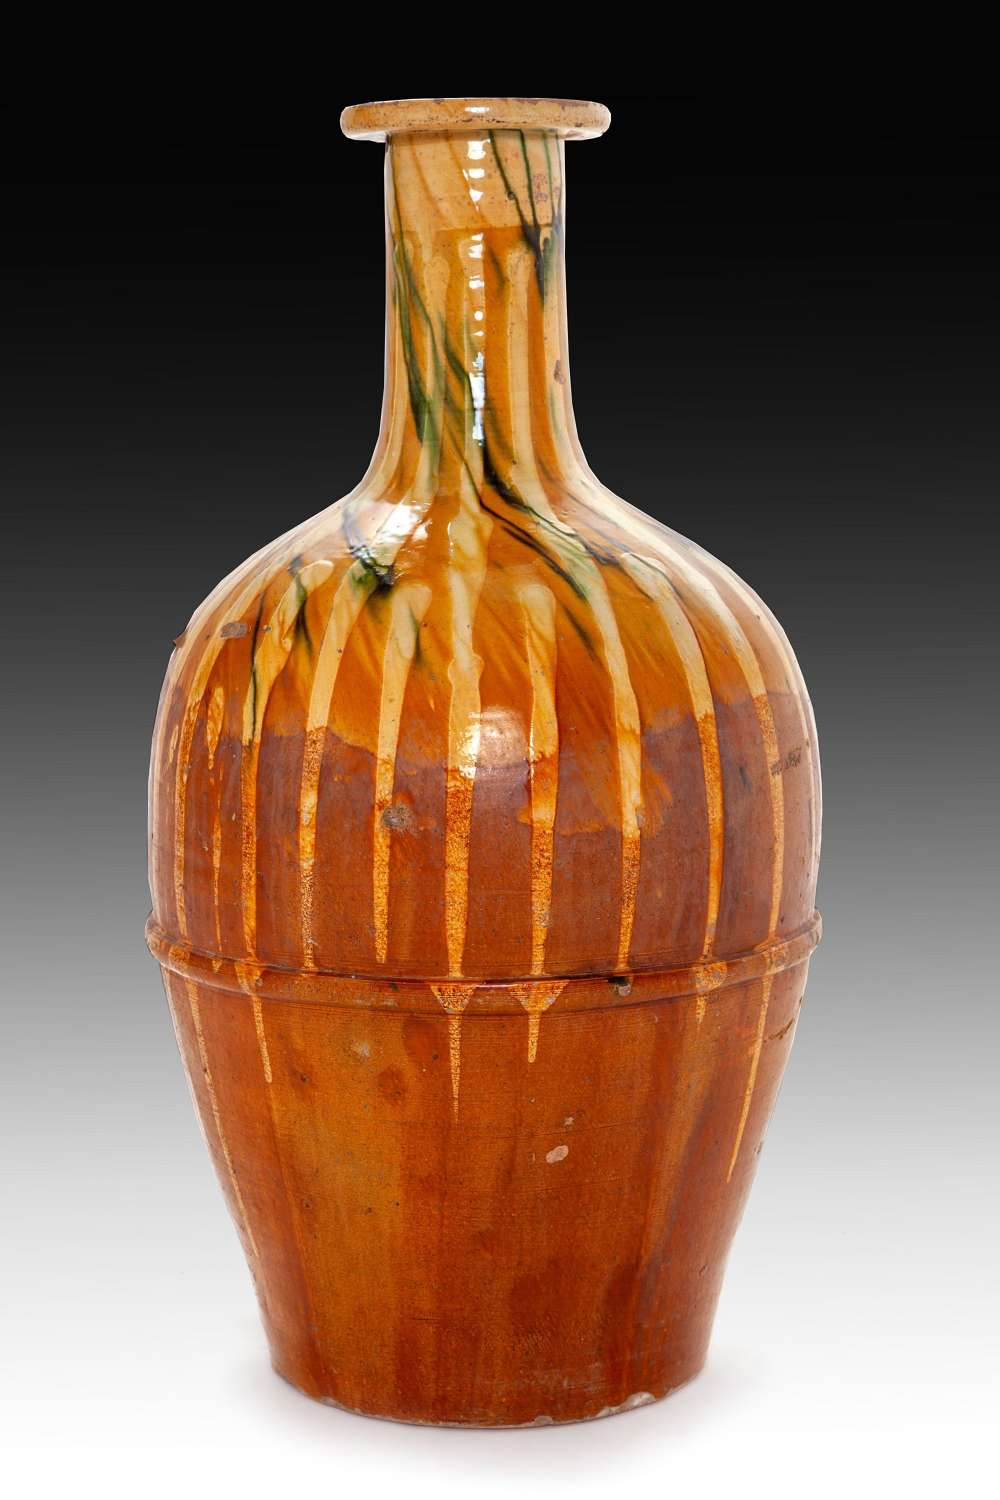 A 19th century Puglia oil jar